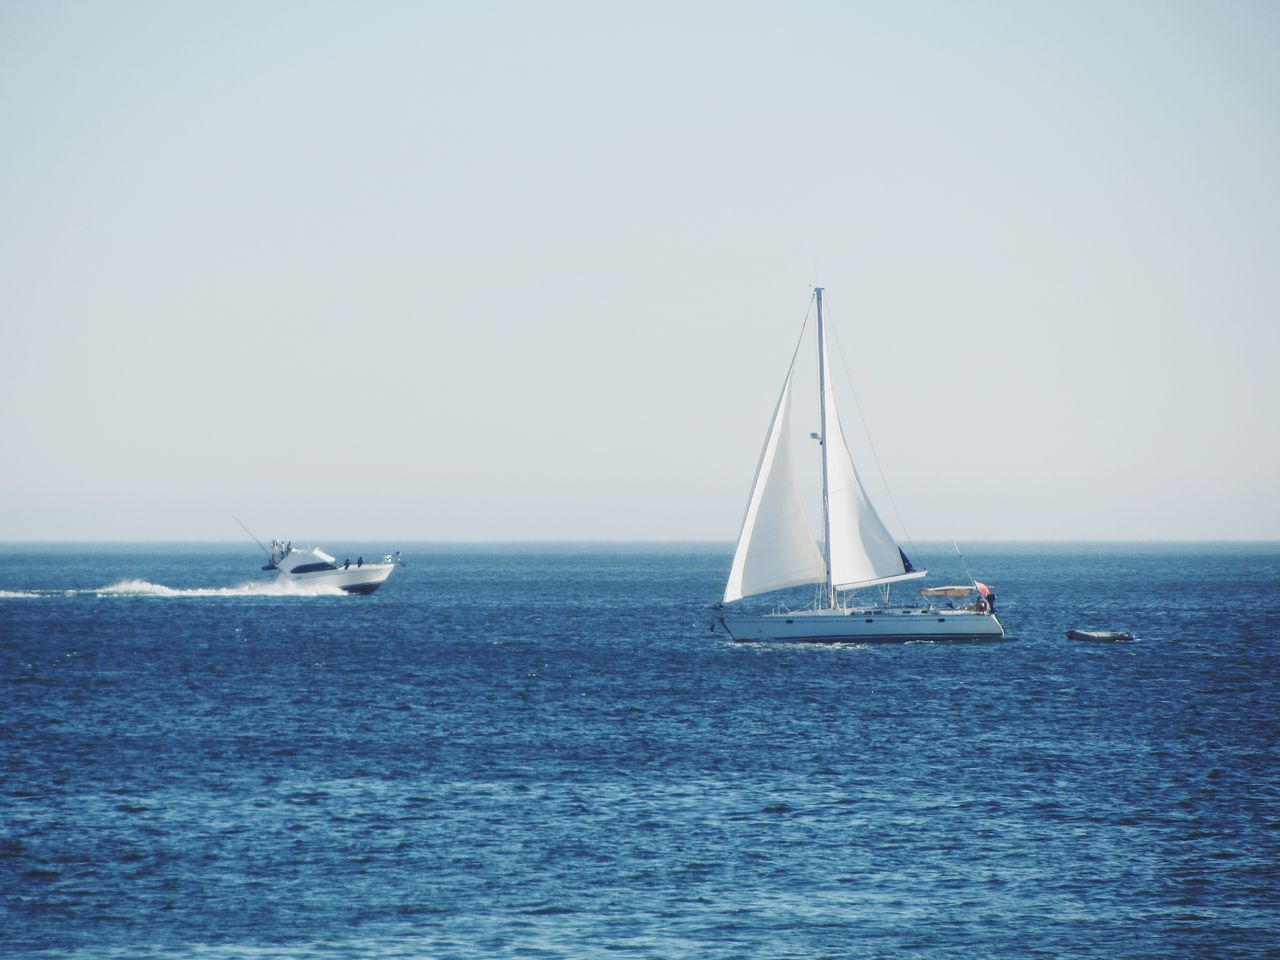 Sailboat Sea Nautical Vessel Sailing Horizon Over Water Sailing Ship Blue Transportation Outdoors Summer Day Sky Water No People Yacht Regatta Mast Nature Clear Sky Tall Ship Sea And Sky